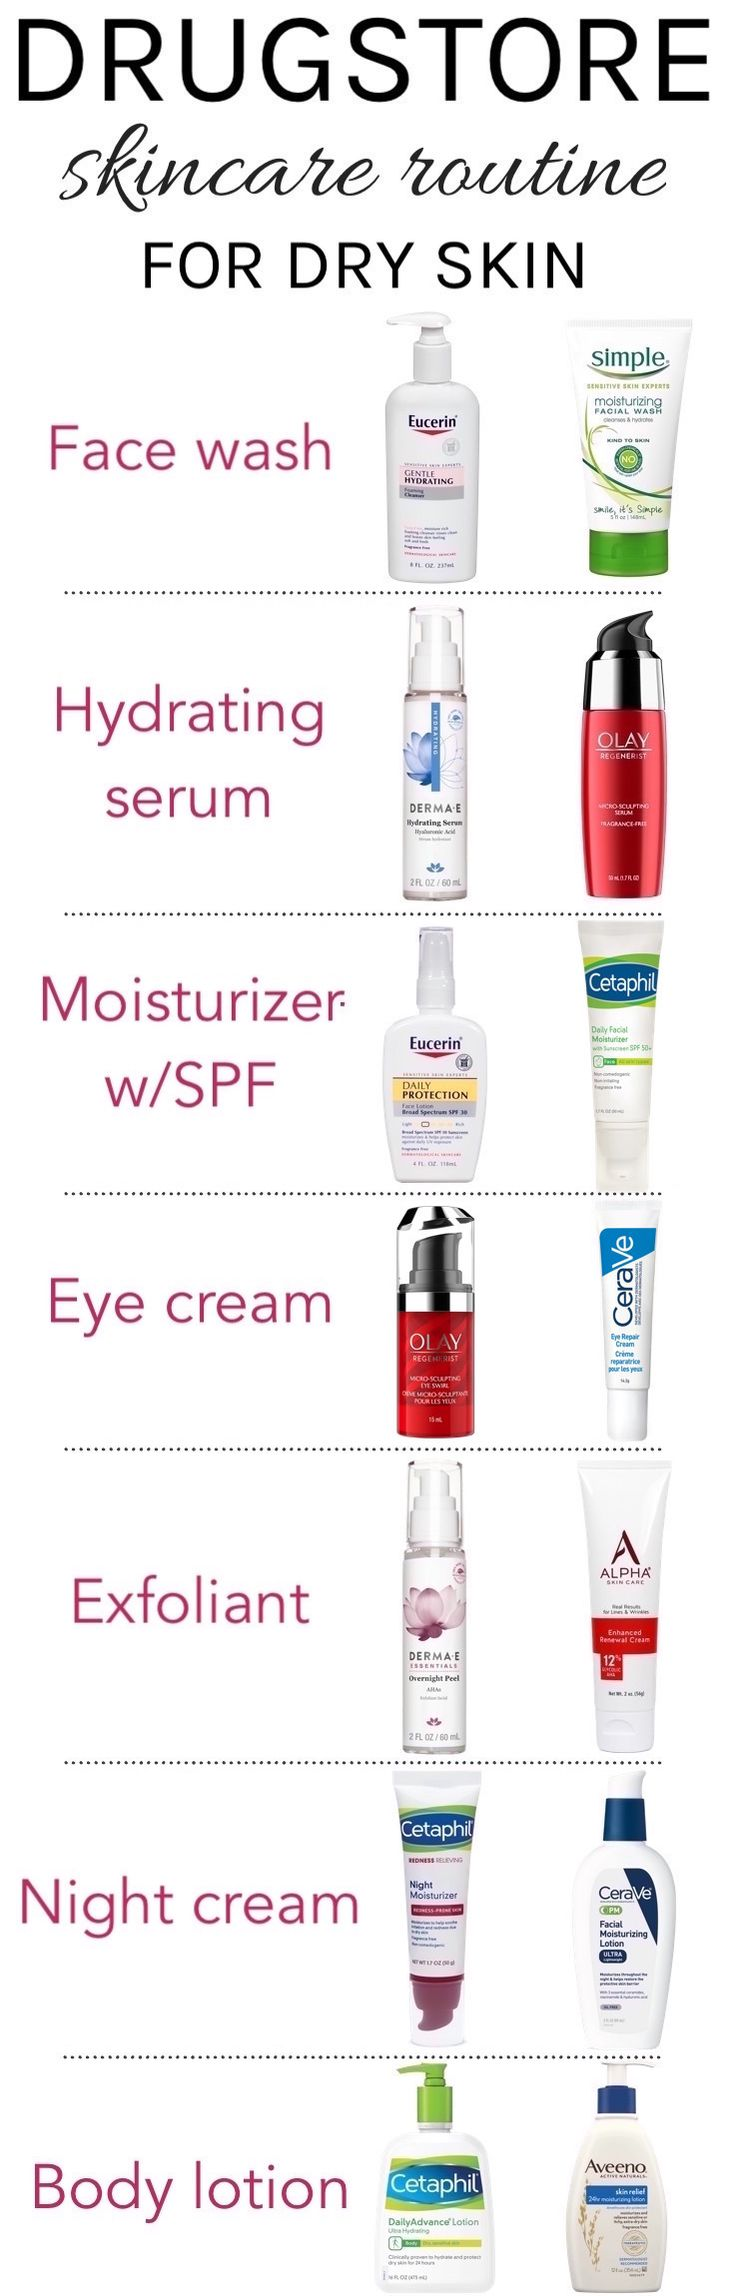 Drugstore Skincare Routine For Dry Skin | Whether you have naturally dry skin or struggling with seasonal dryness during winter, these drugstore skincare saviors will keep your skin smooth and hydrated from head to toe!